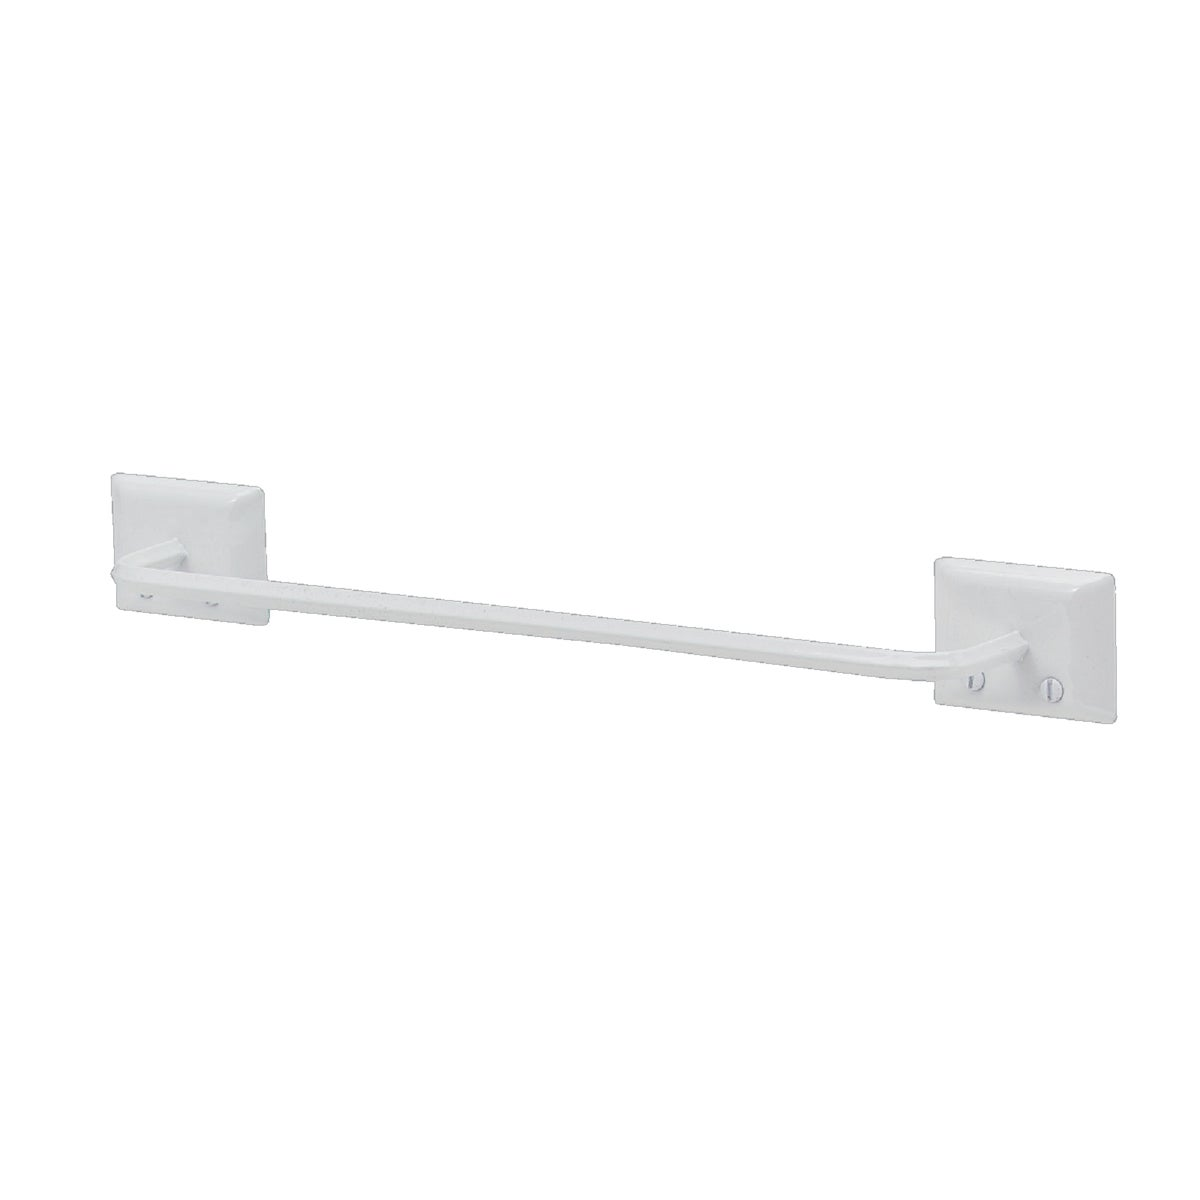 "12"" WHT TOWEL BAR - 48120 by Decko Bath"